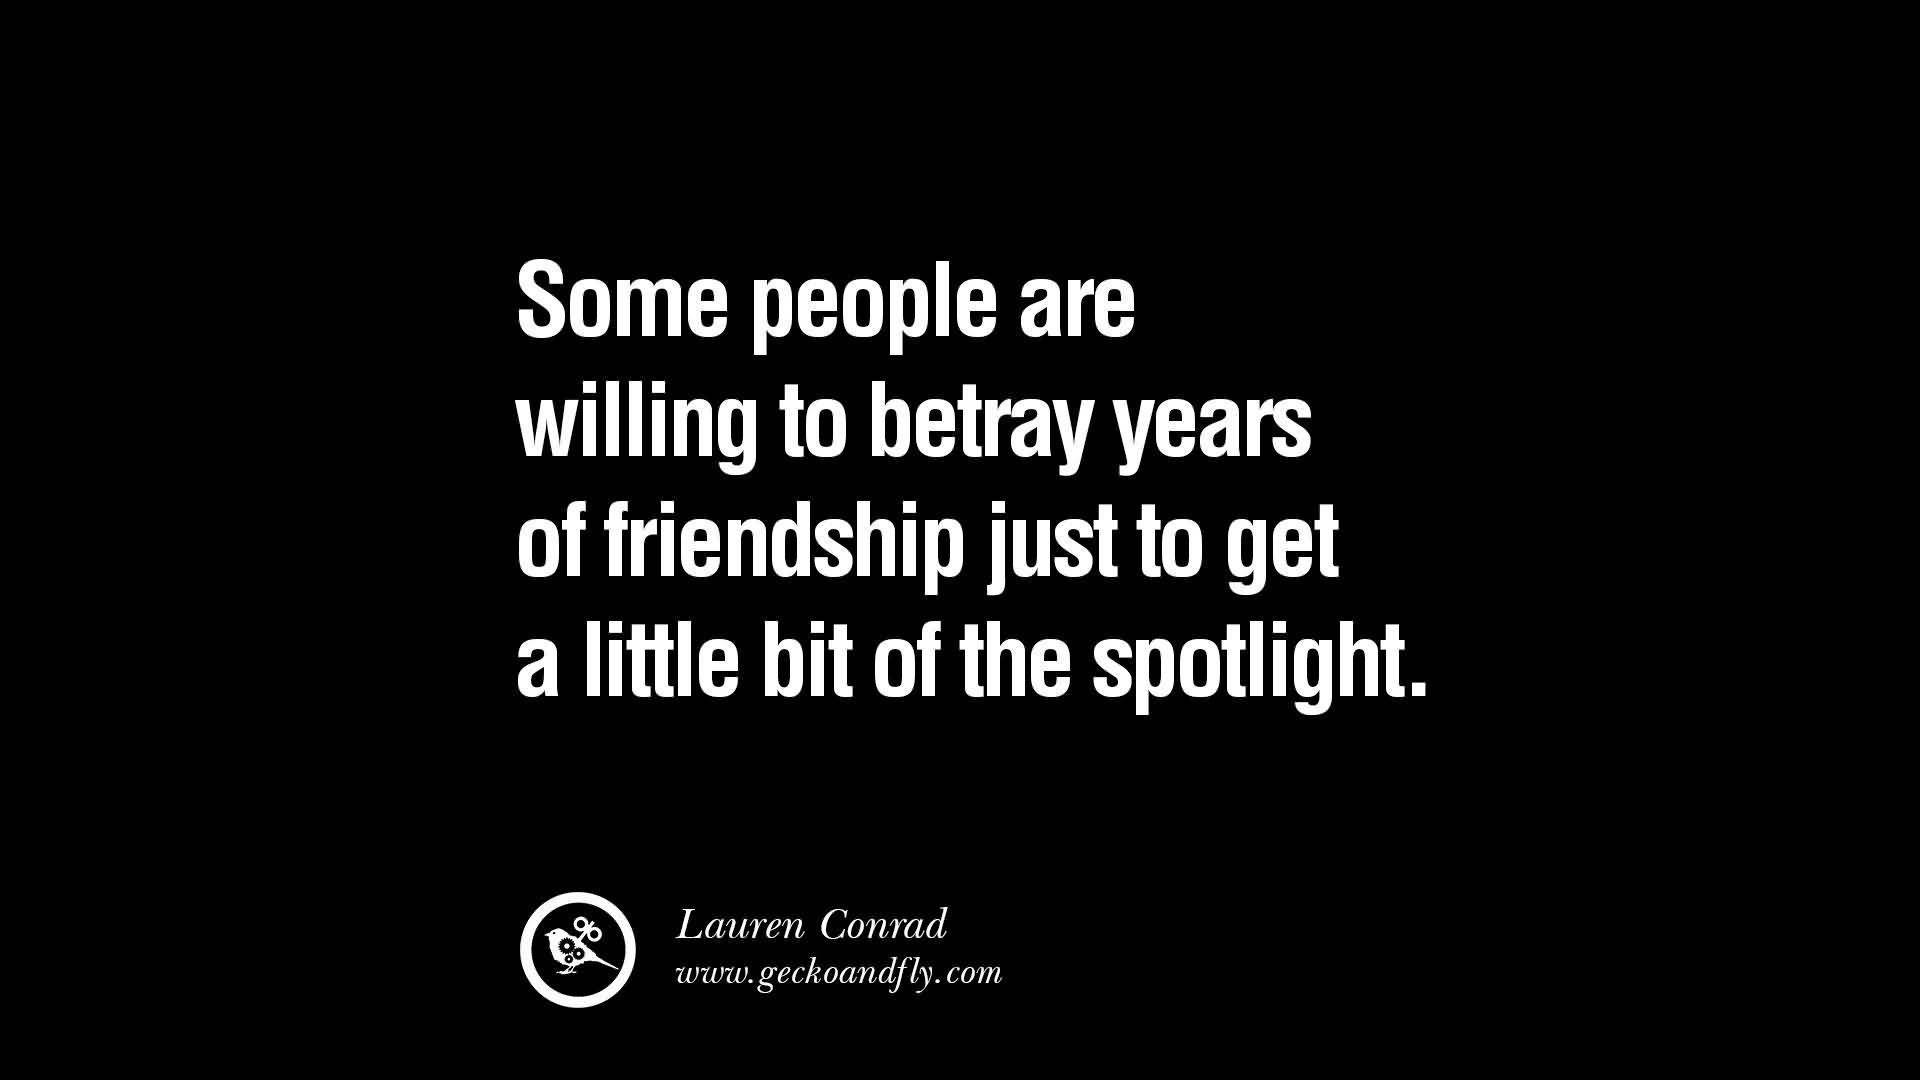 Betrayal Friendship Quotes: 25 Quotes About Friendship Betrayal Images